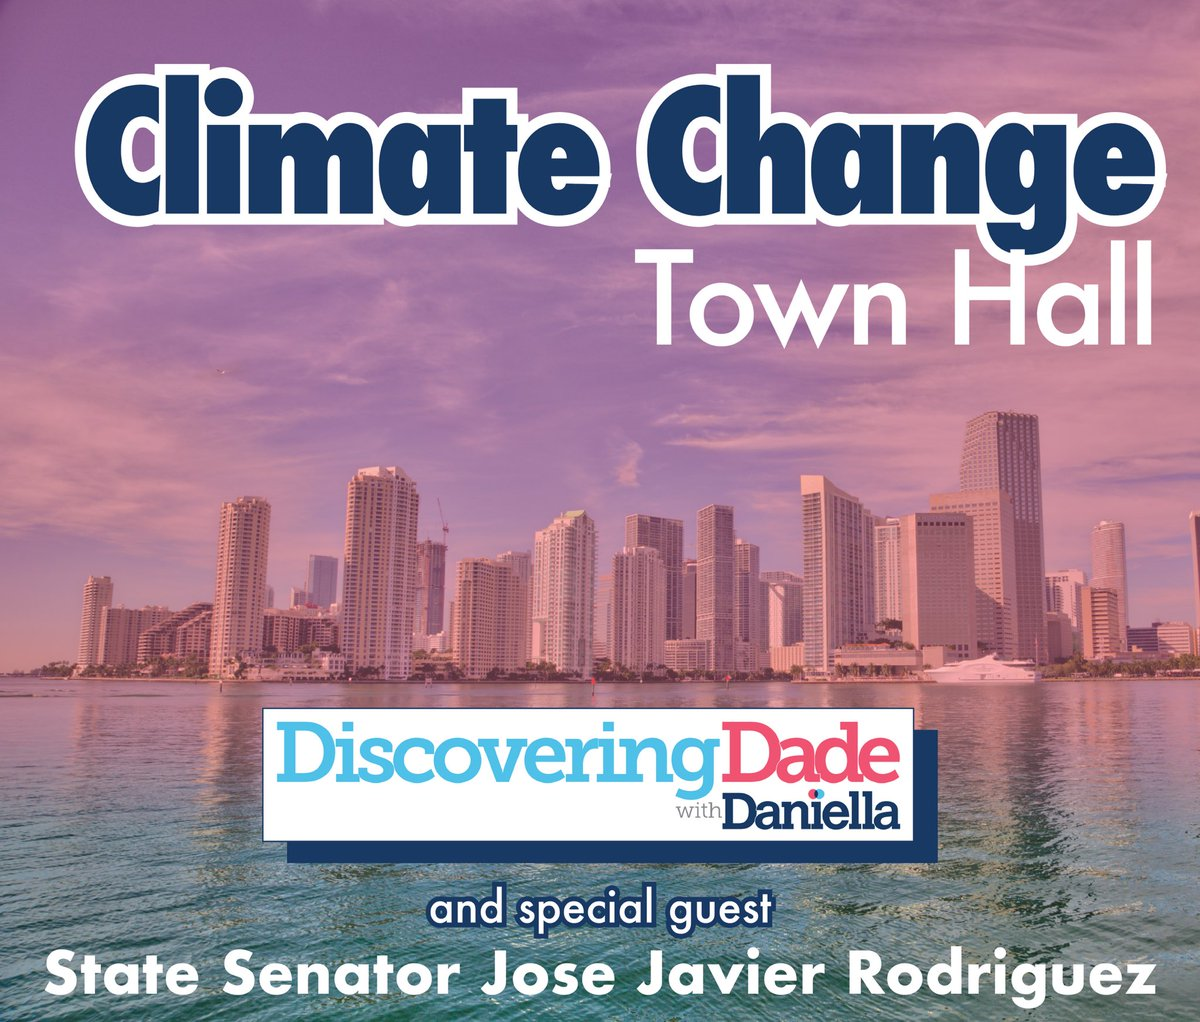 It's time to declare a climate crisis & take action. Join me & @JoseJavierJJR for a Climate Change Town Hall for our next #DiscoveringDadeWithDaniella event on Mon, Nov 18 at 6 PM at YWCA (351 NW 5th Street, Miami, FL 331). RSVP athttp://bit.ly/DaniellaRSVP #WeMustDoBetter